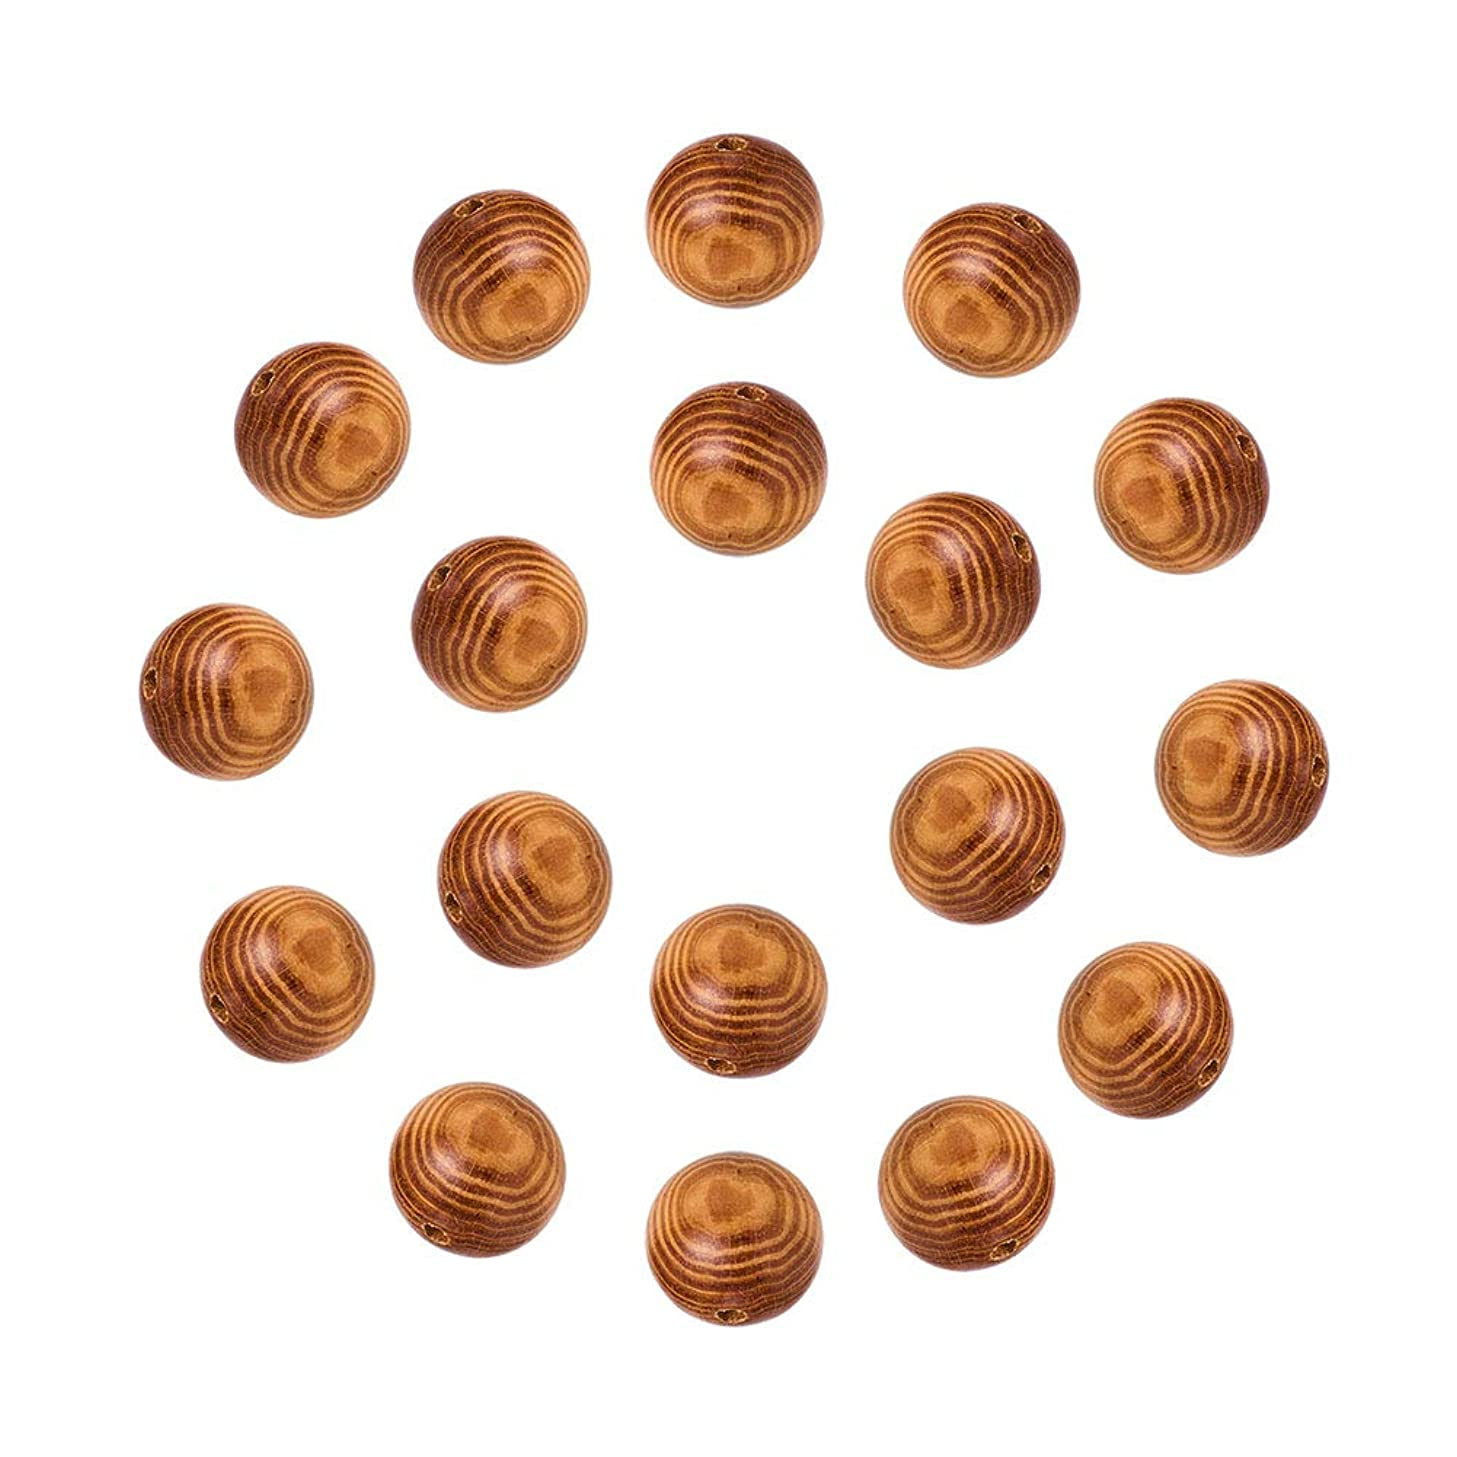 NBEADS 100 Pcs 30mm Burly Wood Round Wood Beads, Natural Wooden Spacer Beads Loose Beads for DIY Jewelry Making